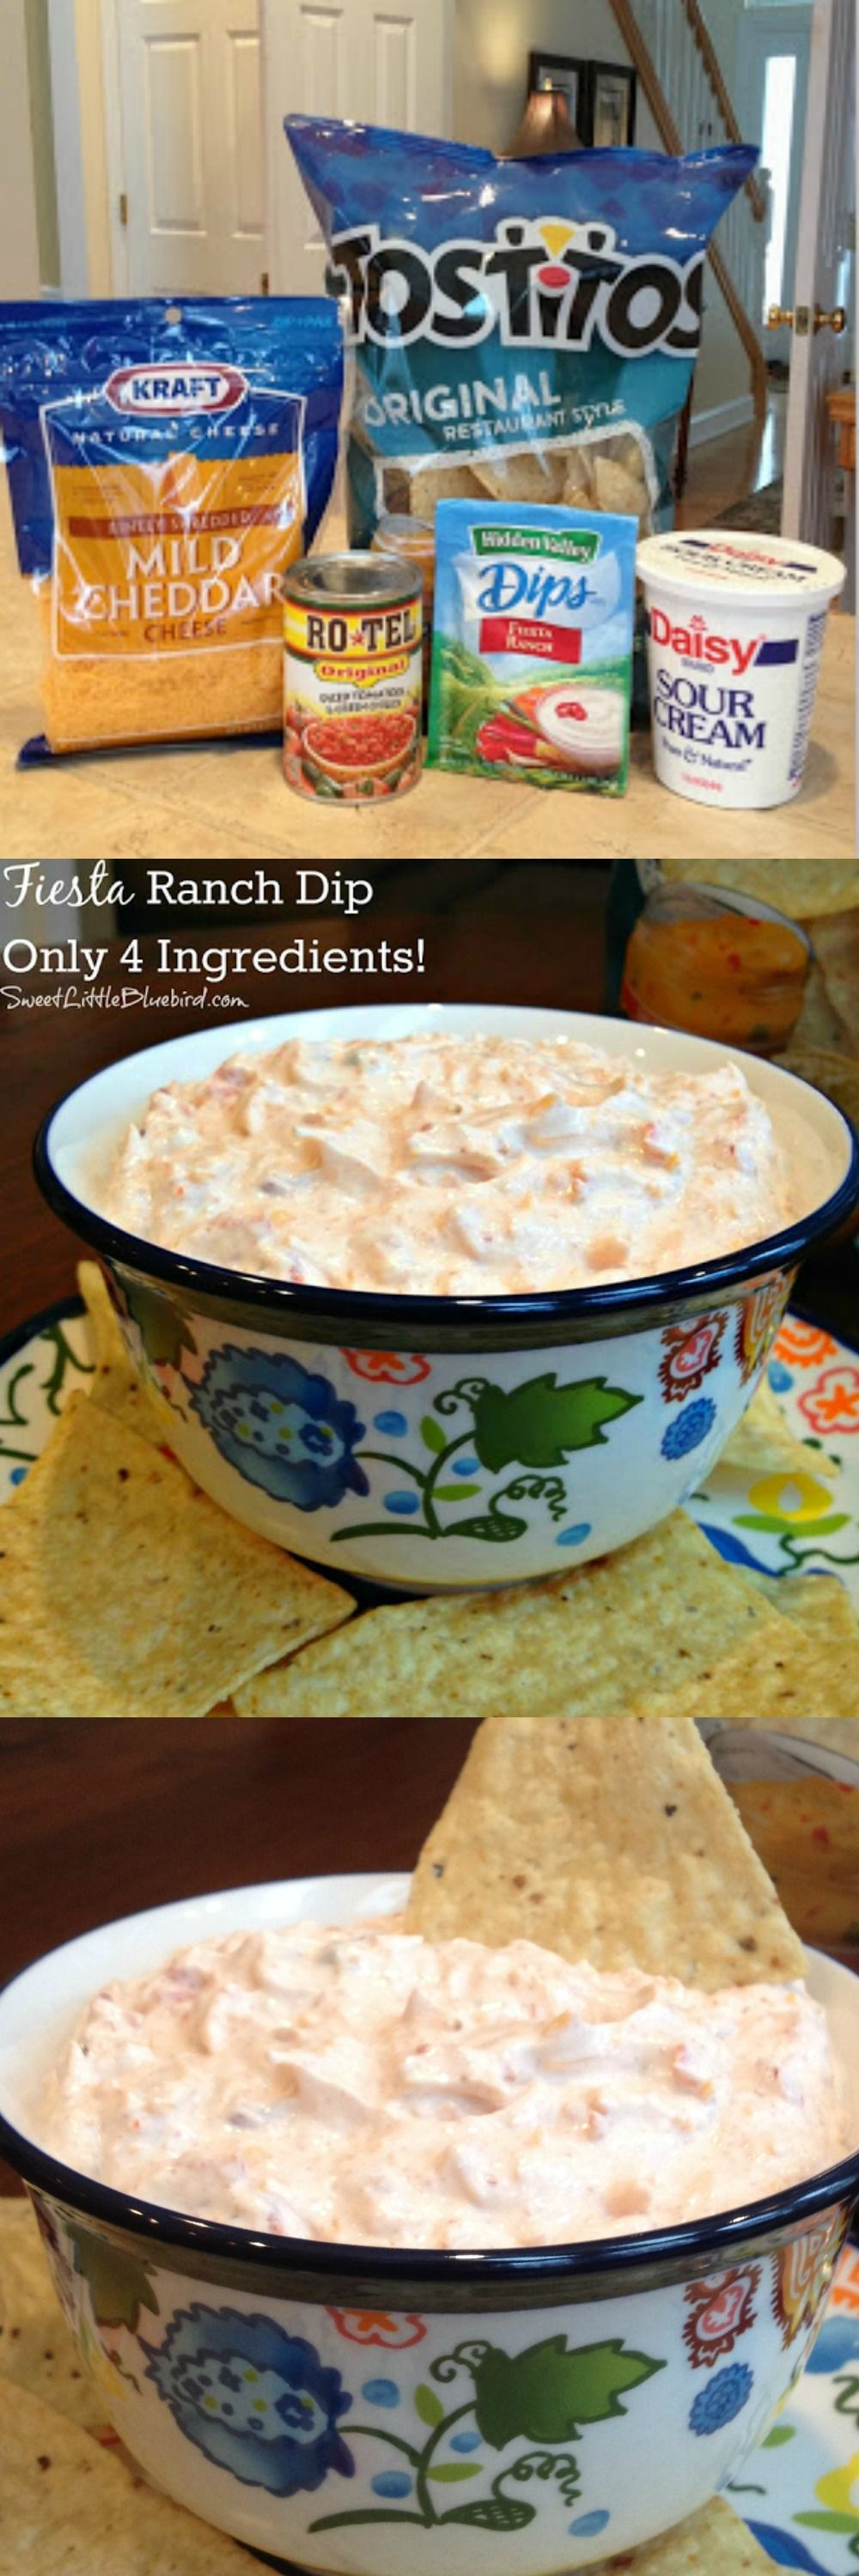 Fiesta Ranch Dip Yummy Appetizers Food Recipes